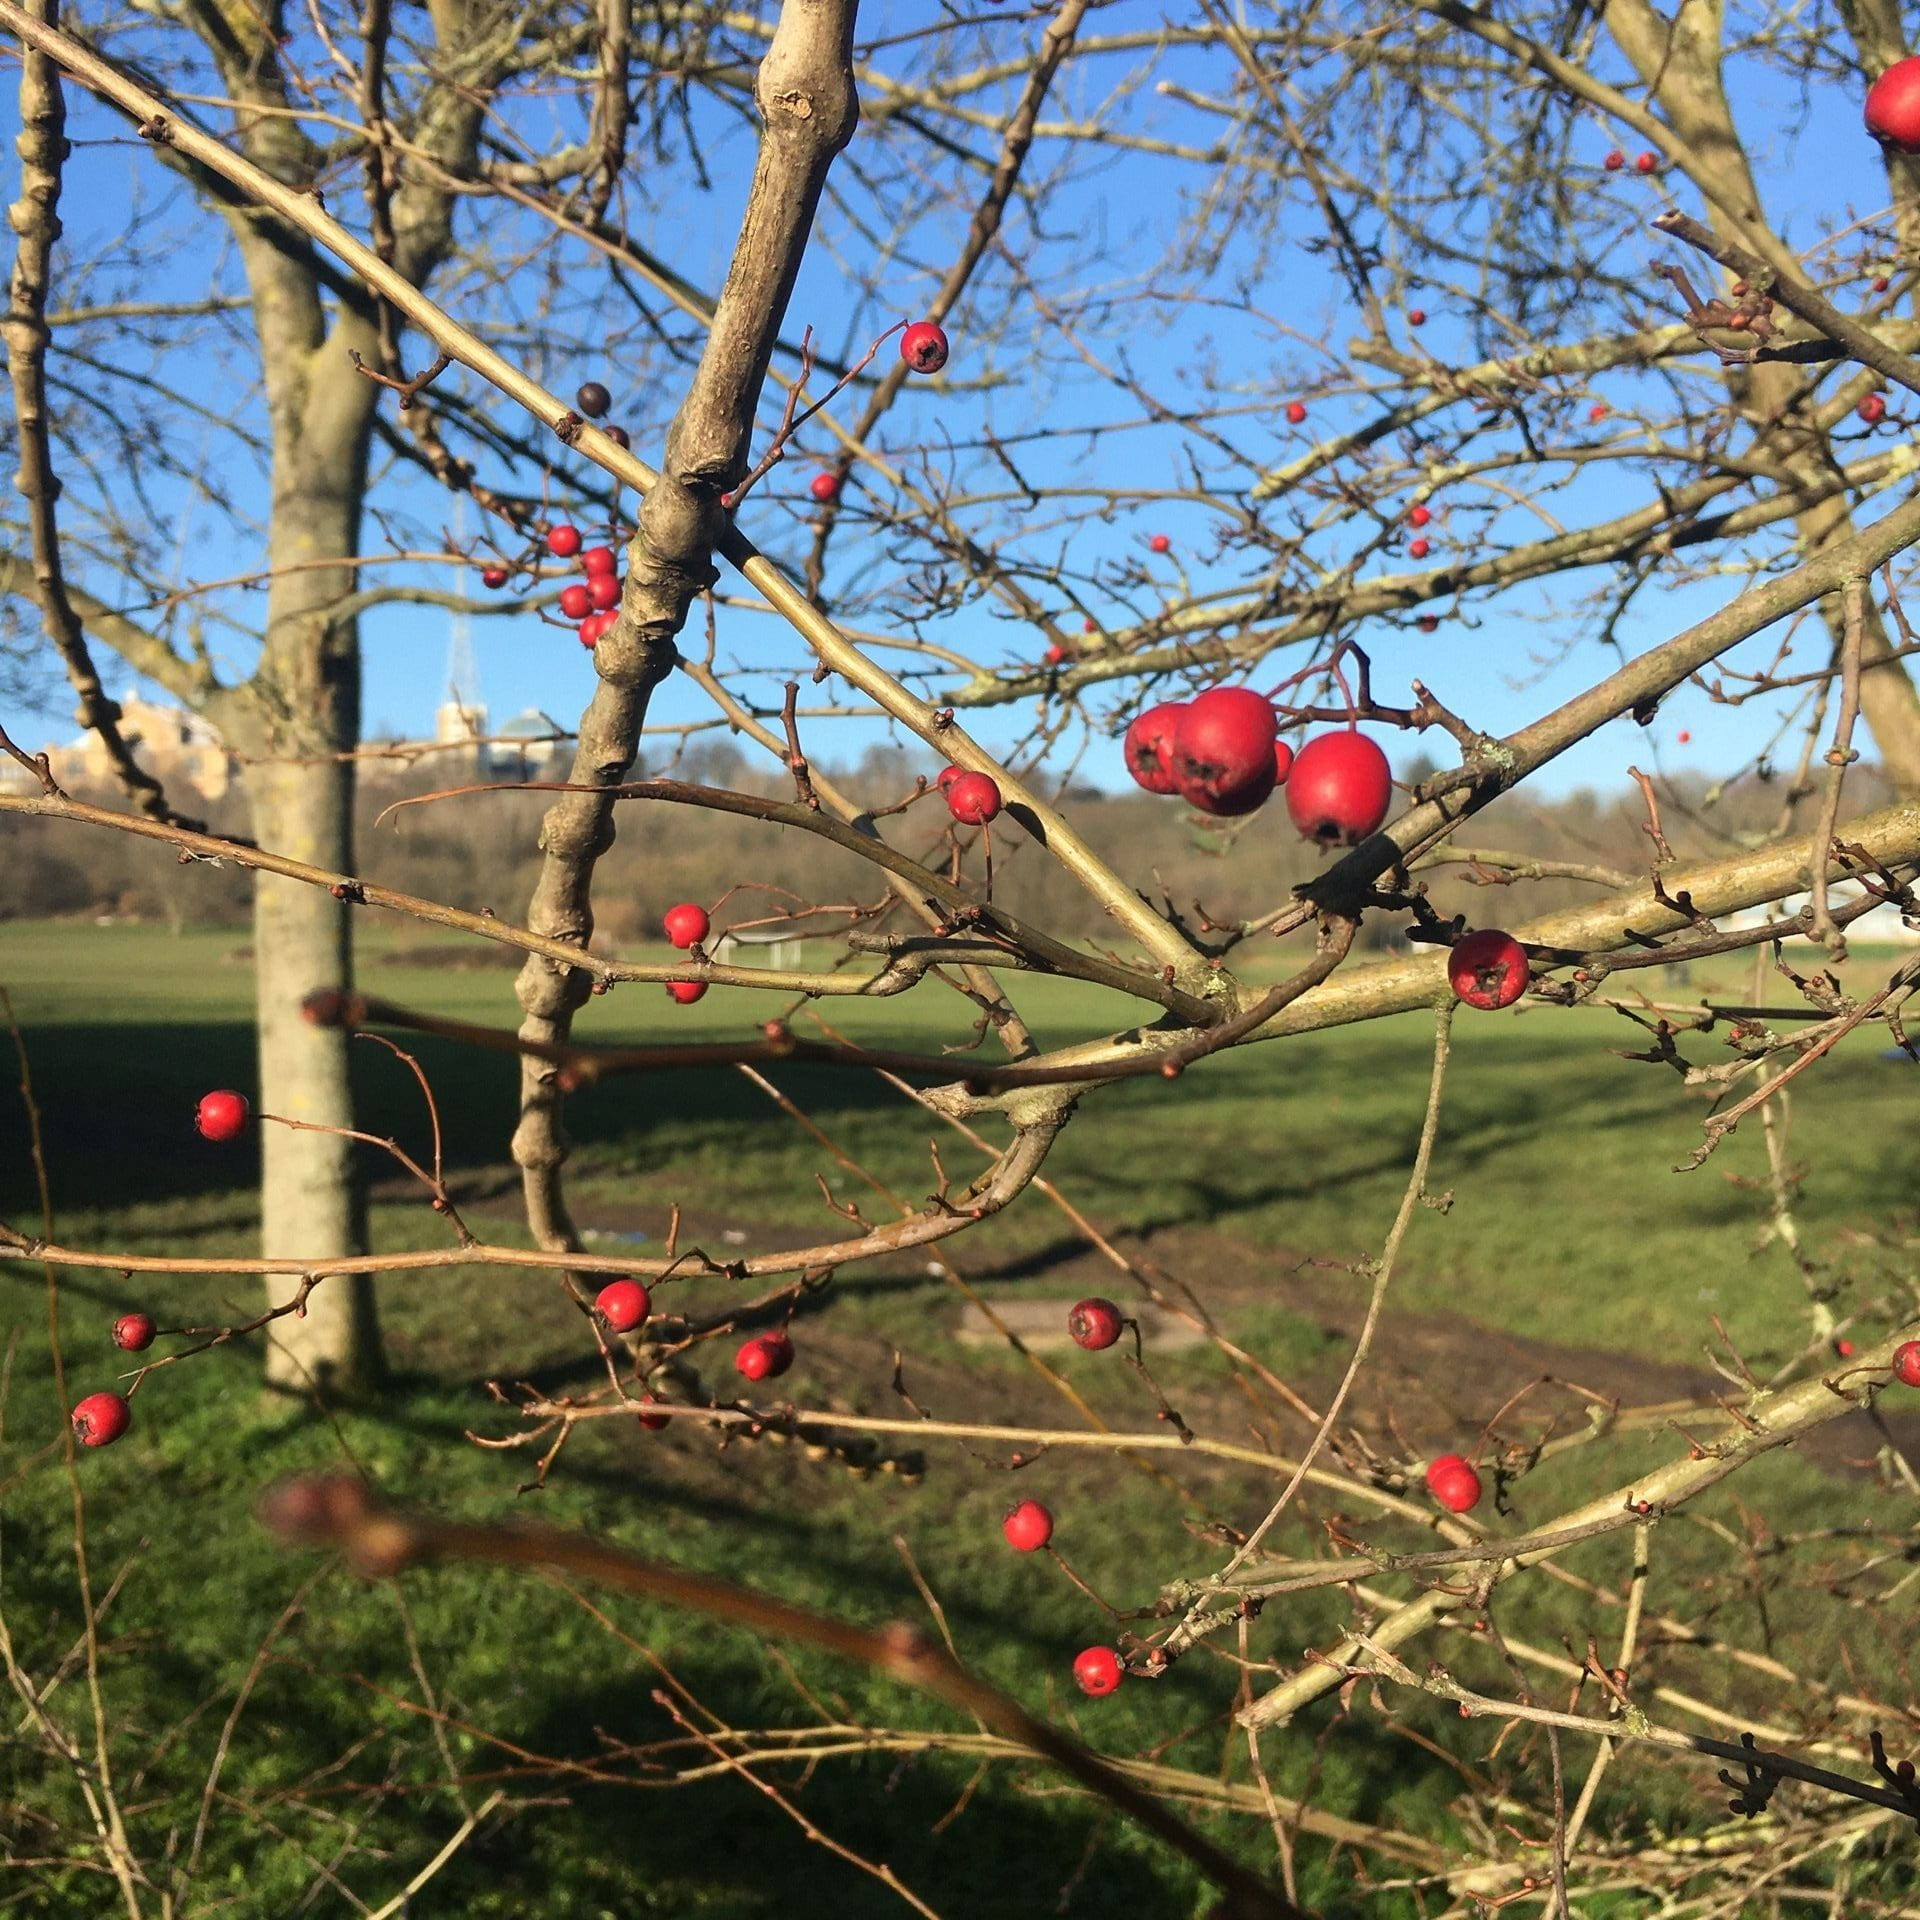 a winter scene of red berries on bare branches